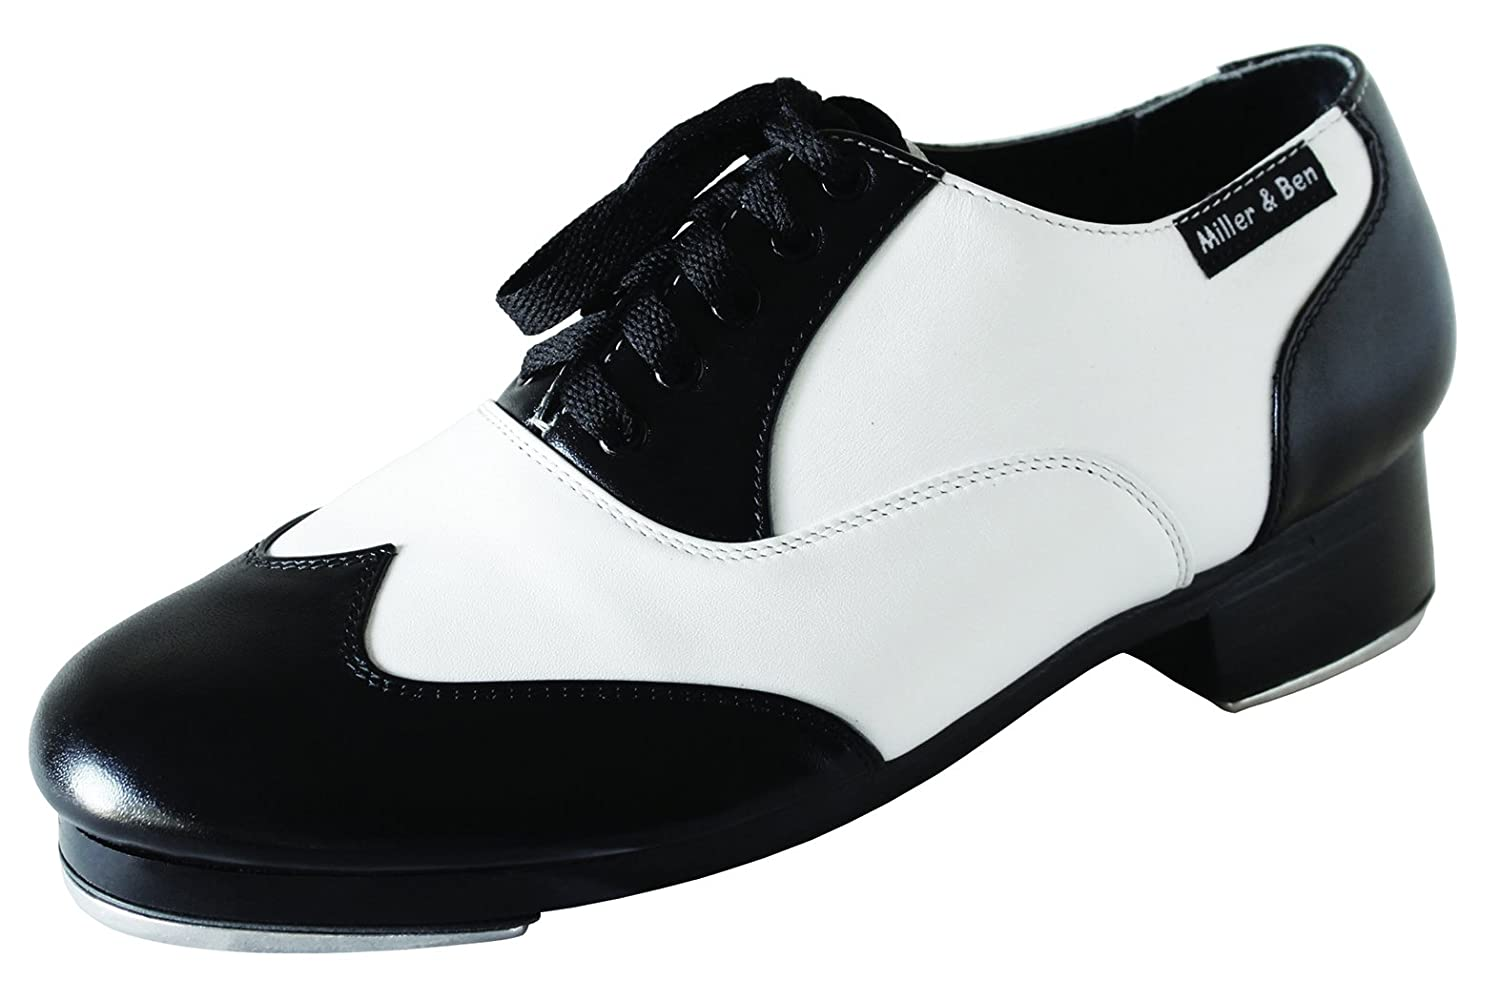 Men's 1950s Shoes Styles- Classics to Saddles to Rockabilly Miller & Ben Tap Shoes Jazz-Tap Master Black & White - STANDARD SIZES $285.00 AT vintagedancer.com